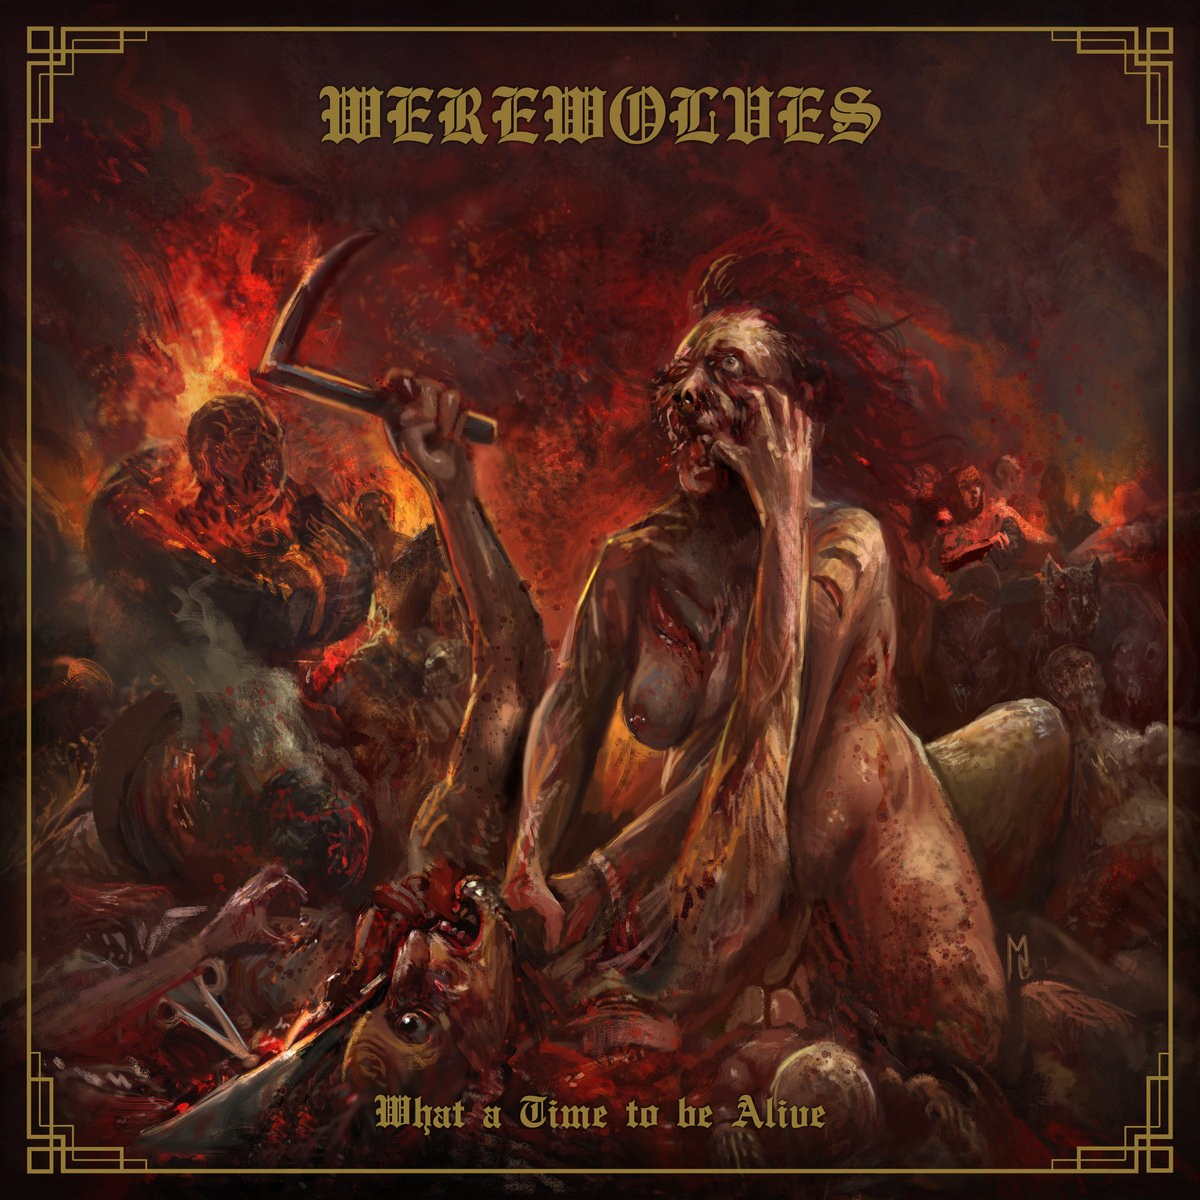 Reviews for Werewolves - What a Time to be Alive